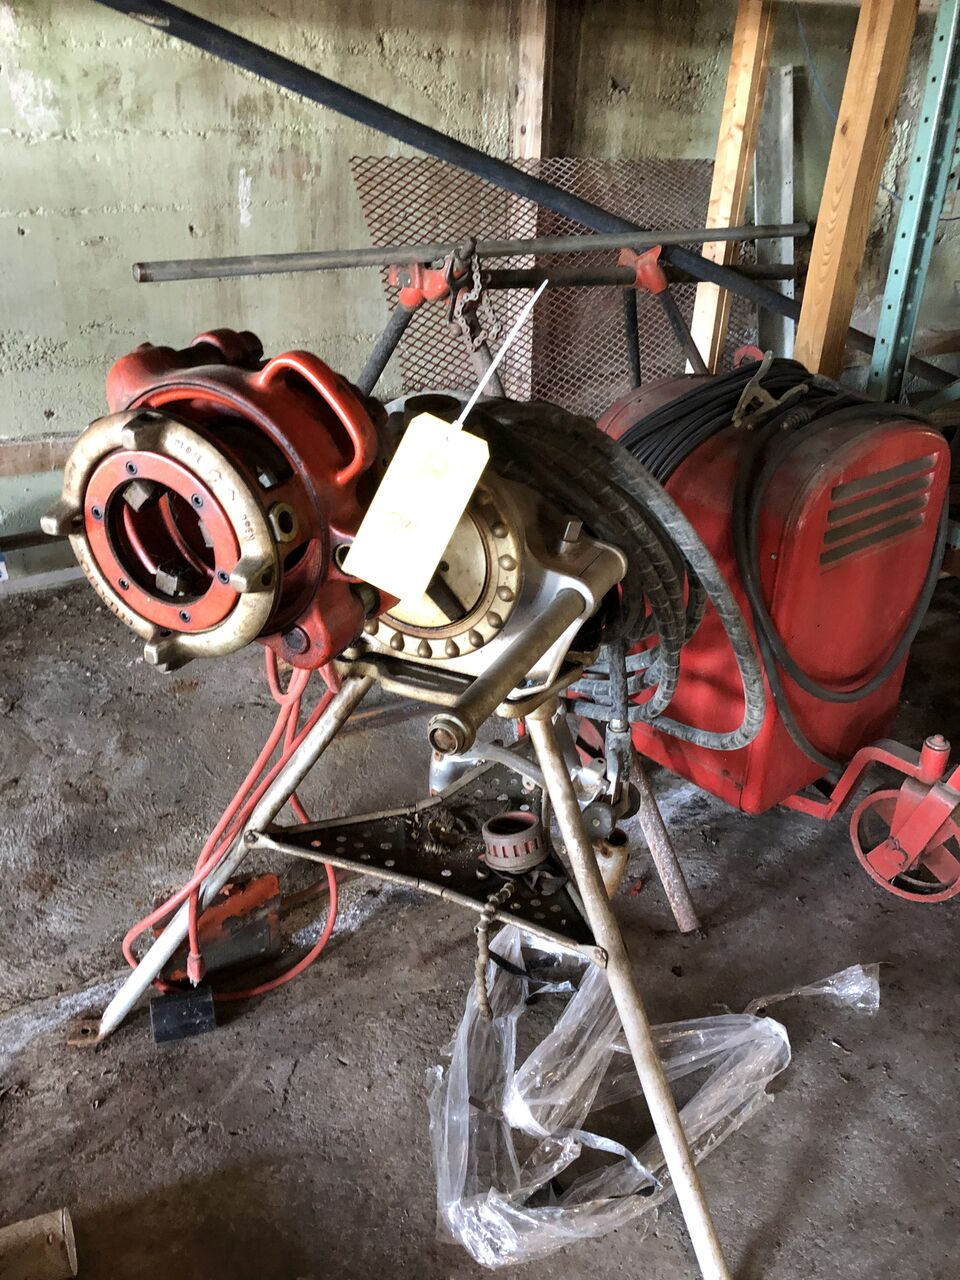 Lot 390 - Rigid Red Chuck Pipe Clamp